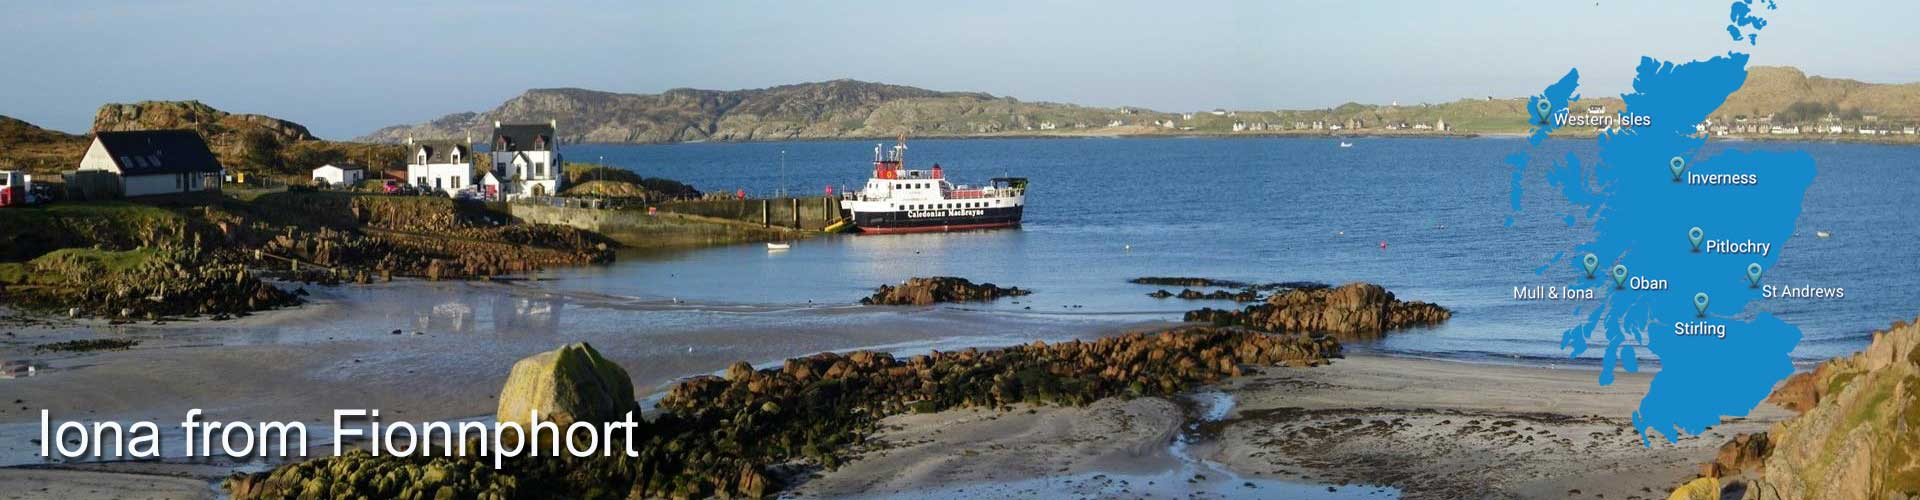 The Iona ferry getting to Iona